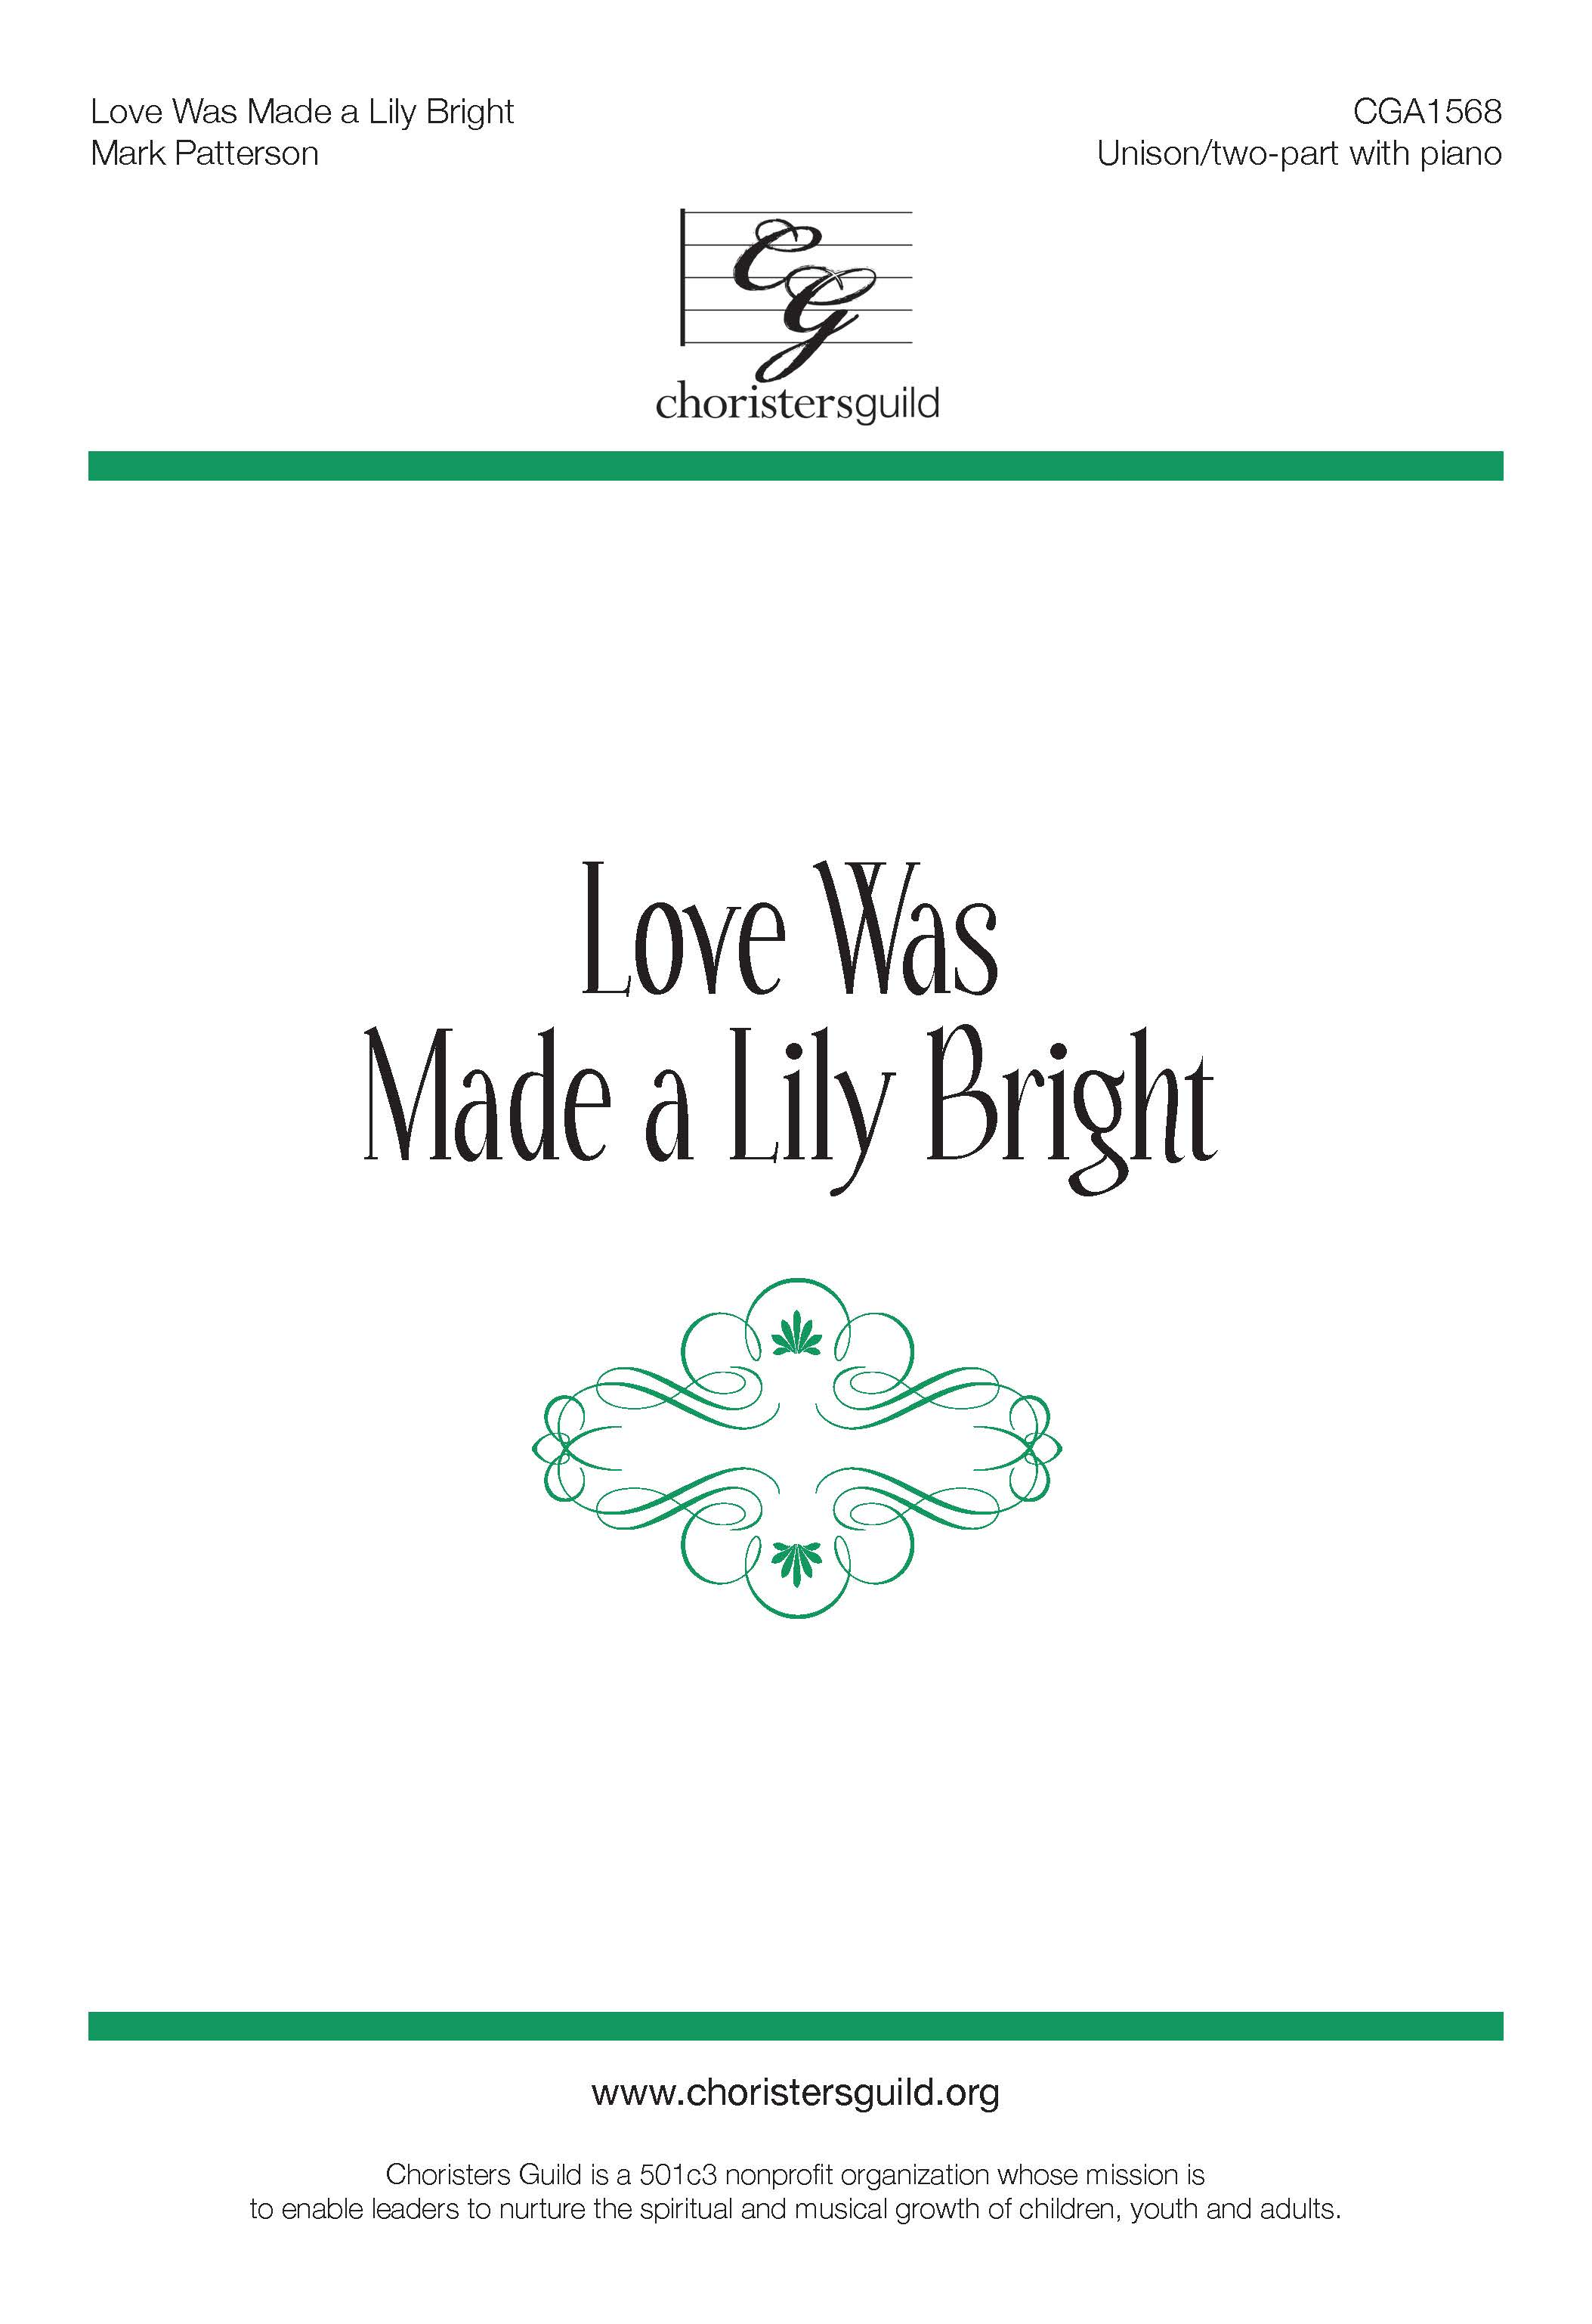 Love Was Made a Lily Bright